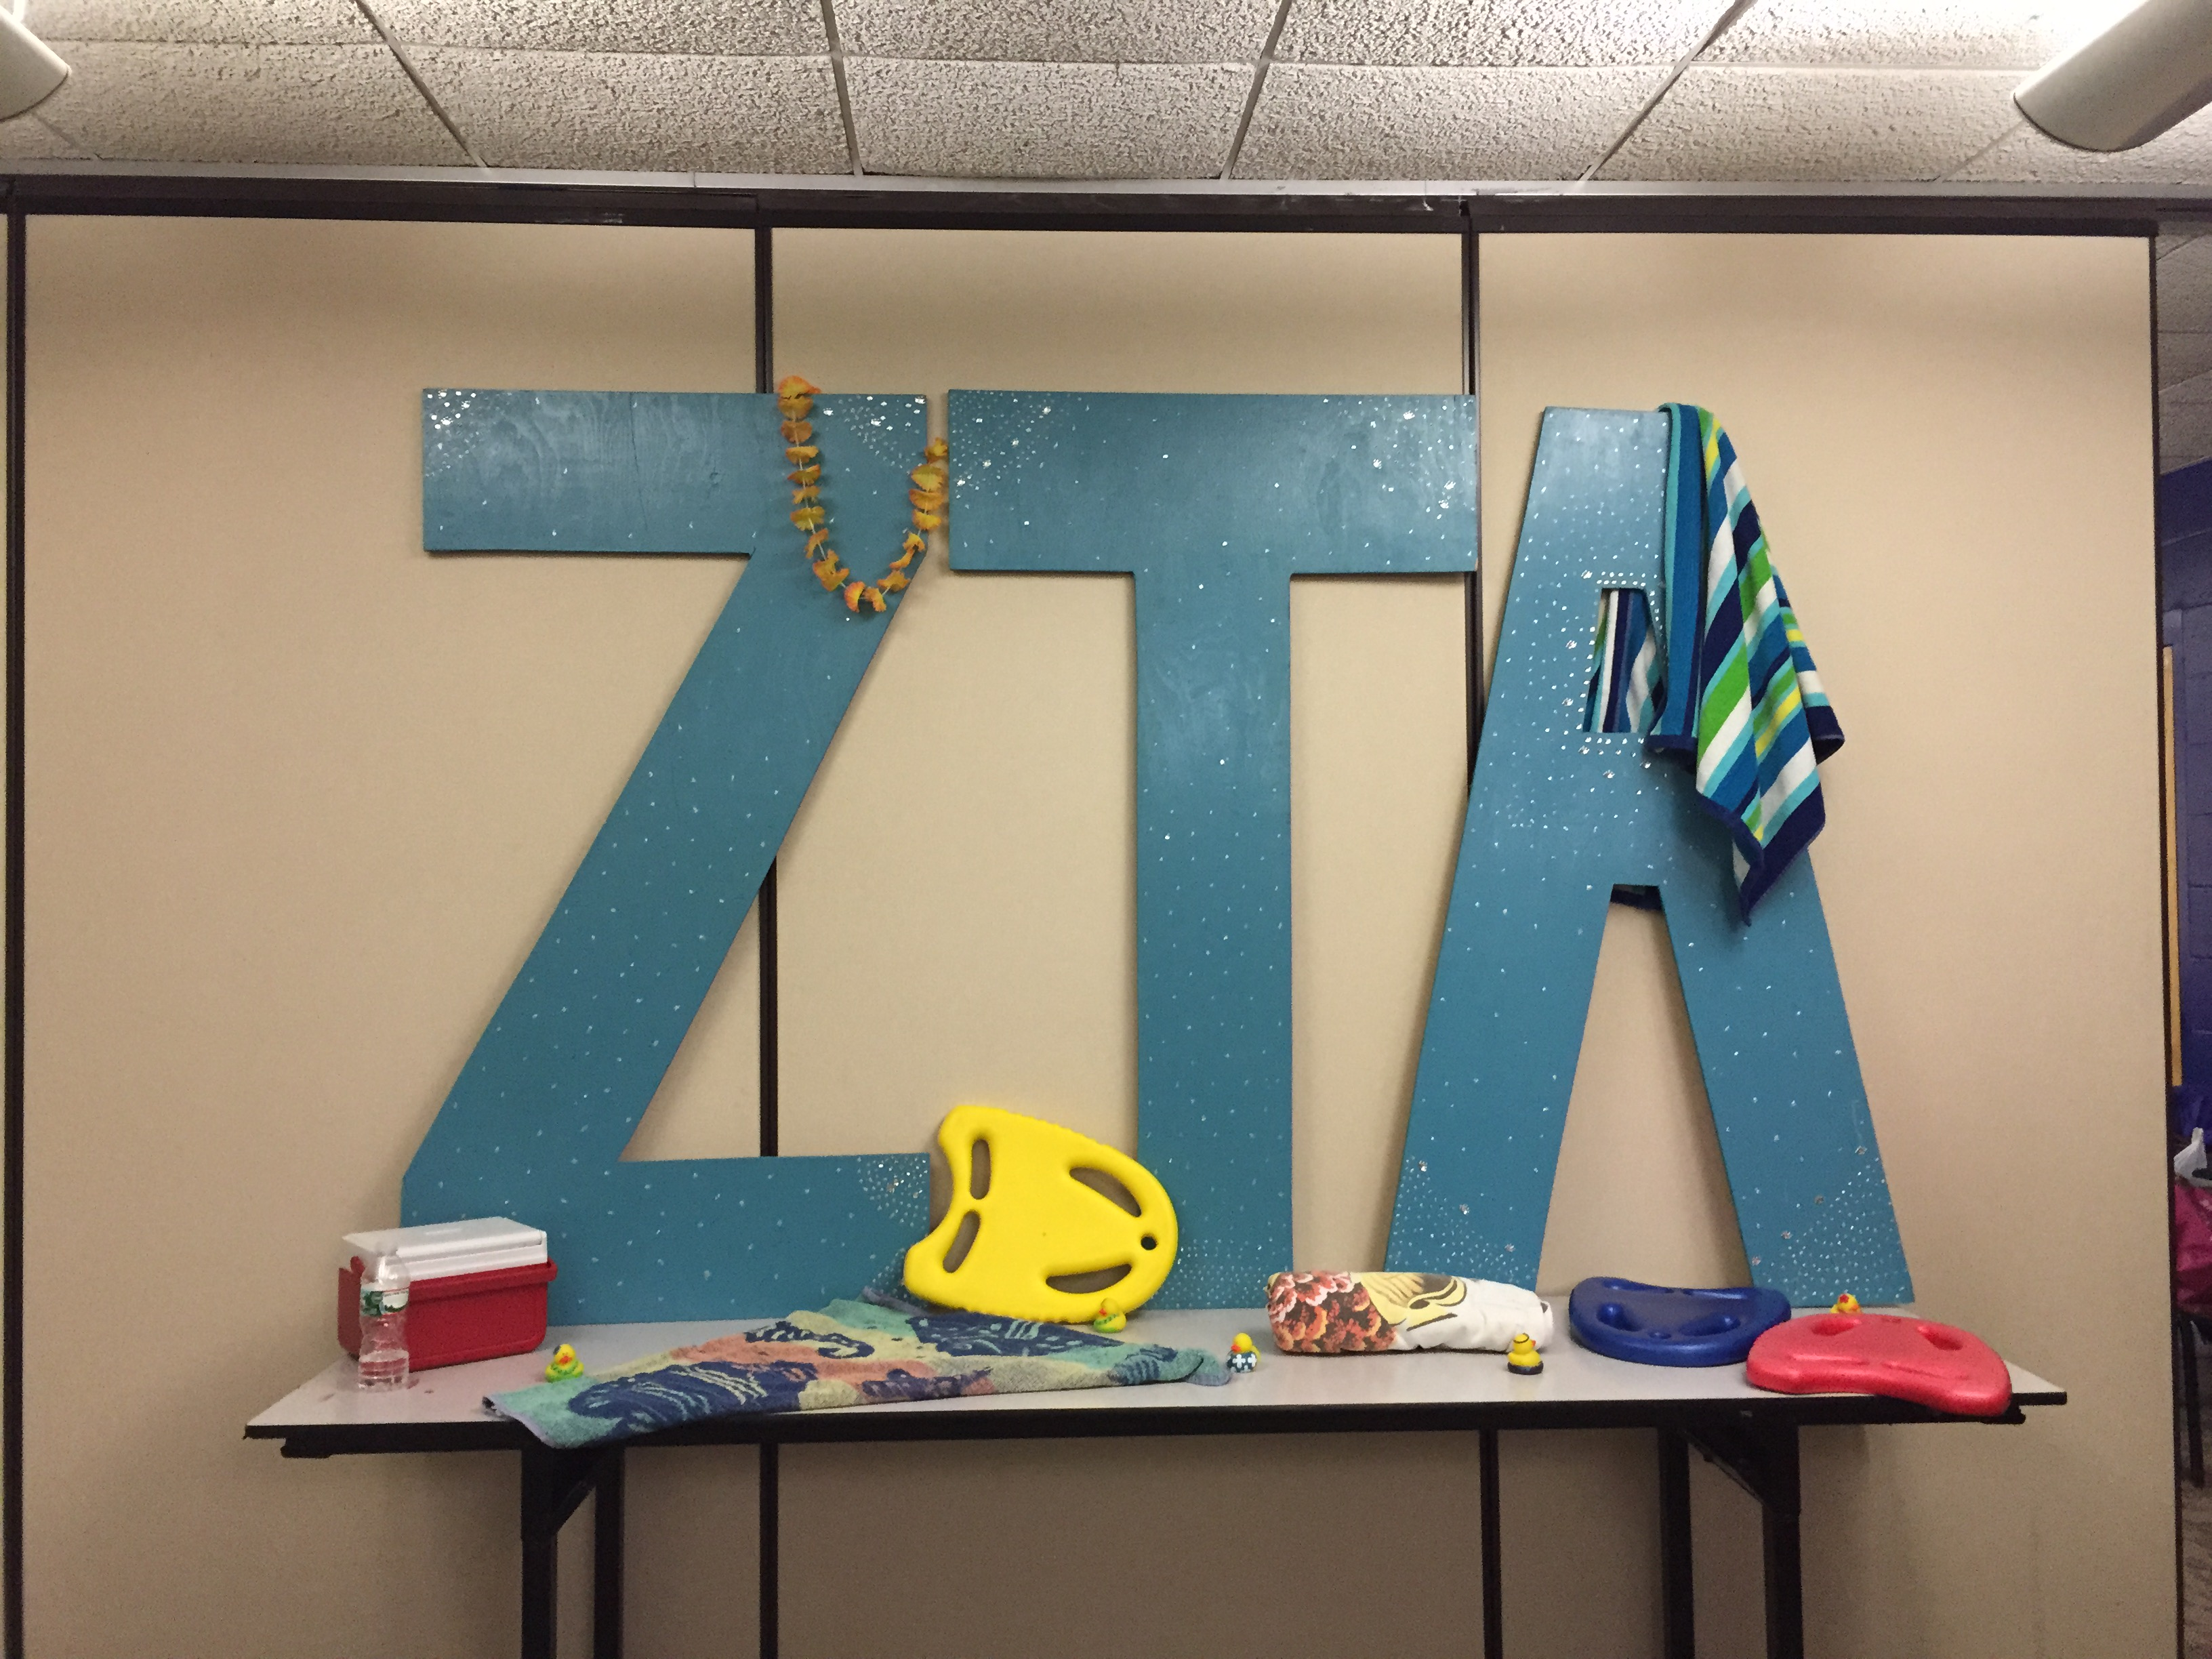 Ride in the Tide with Zeta Tau Alpha